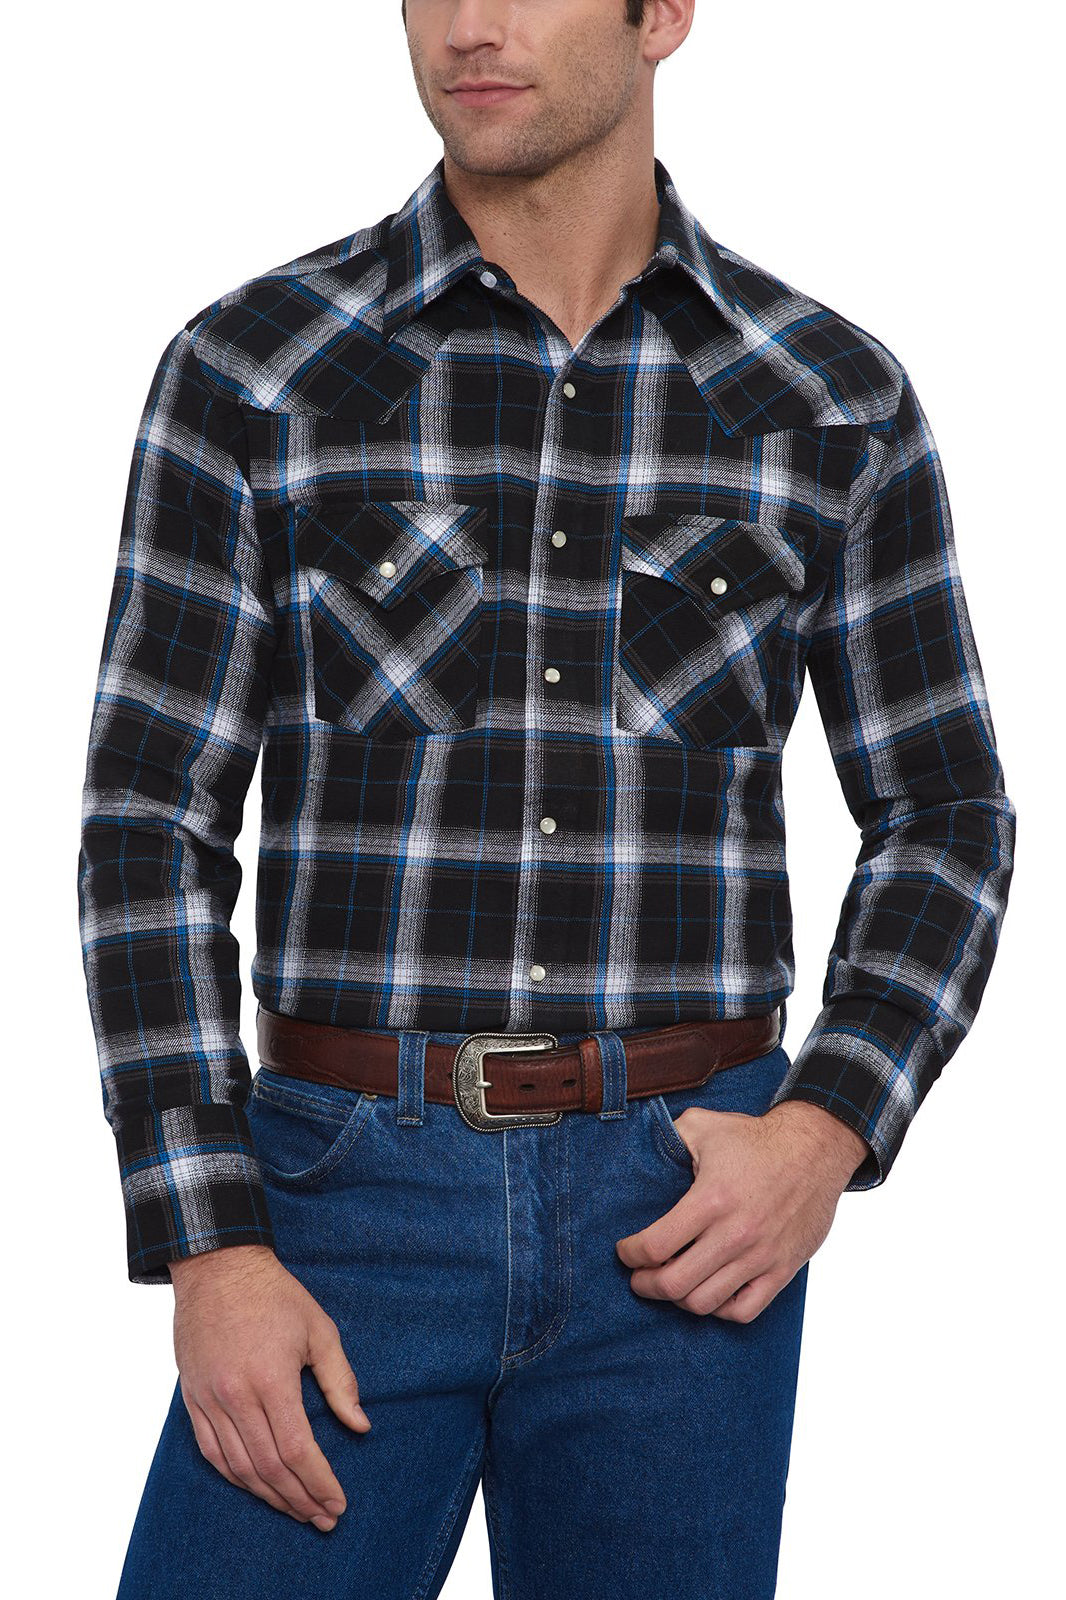 Men's Long Sleeve Flannel Plaid Shirt in Cobalt | Ely Cattleman